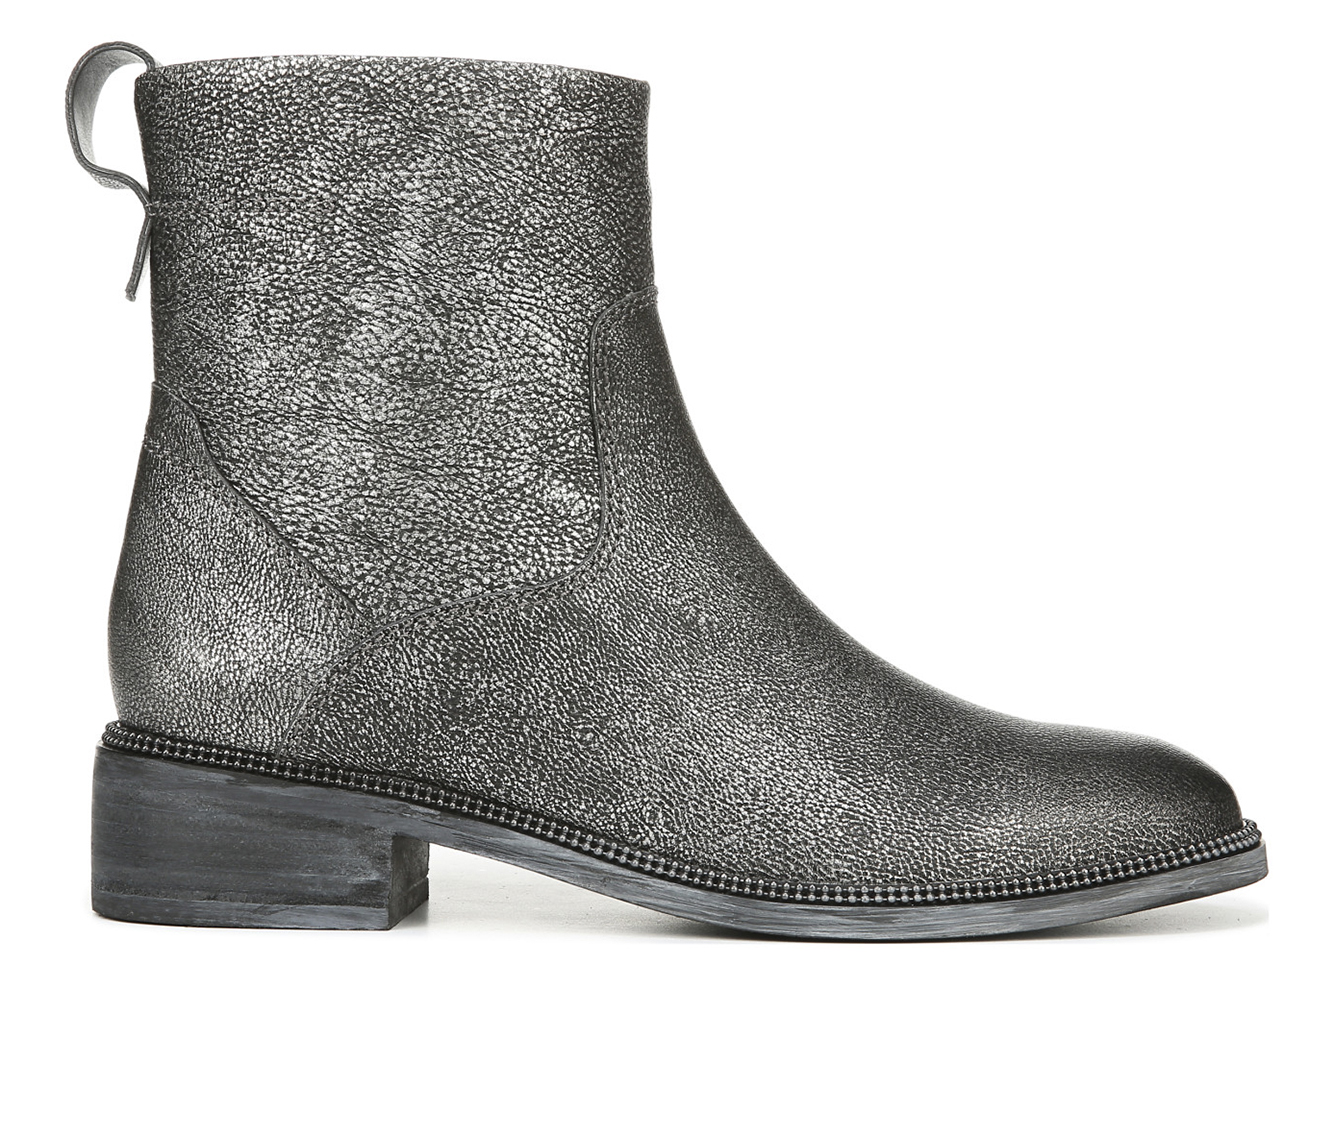 Franco Sarto Brindle Women's Boots (Gray - Leather)